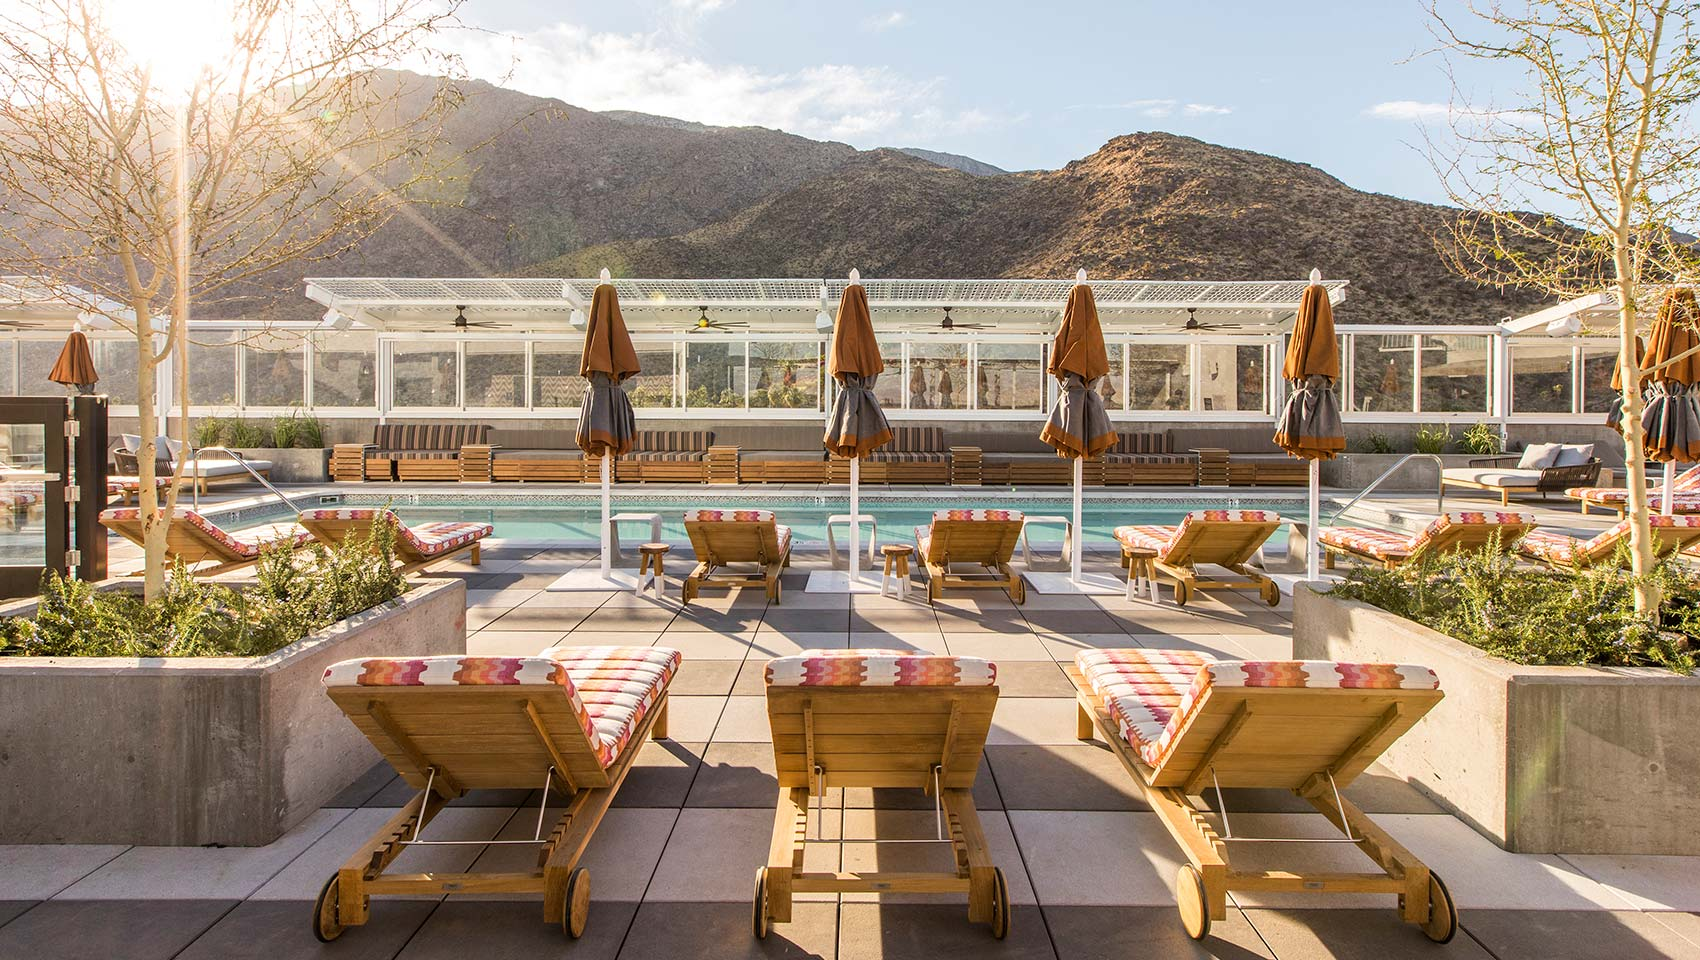 Kimpton rowan palm springs pool